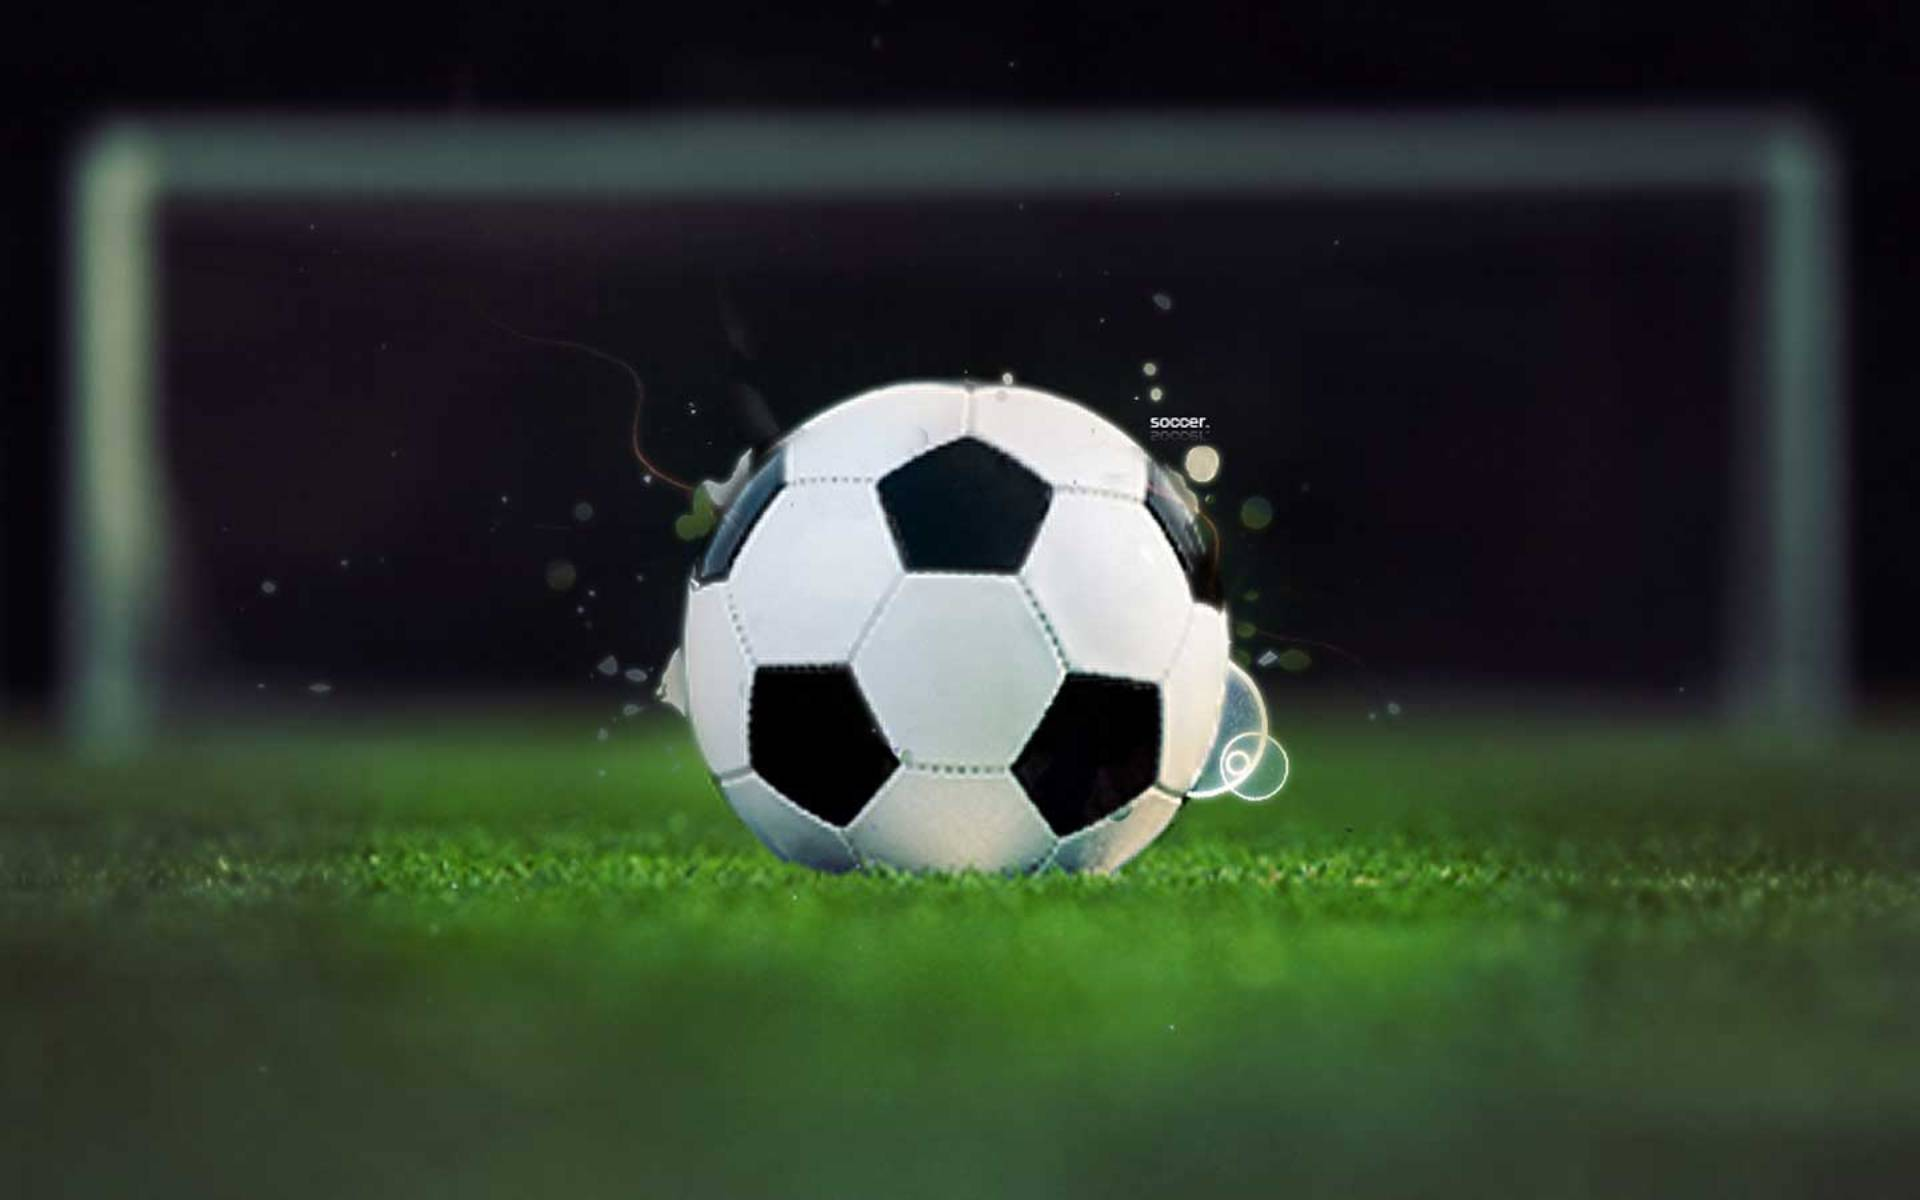 Soccer Ball Wallpaper: Soccer Desktop Backgrounds